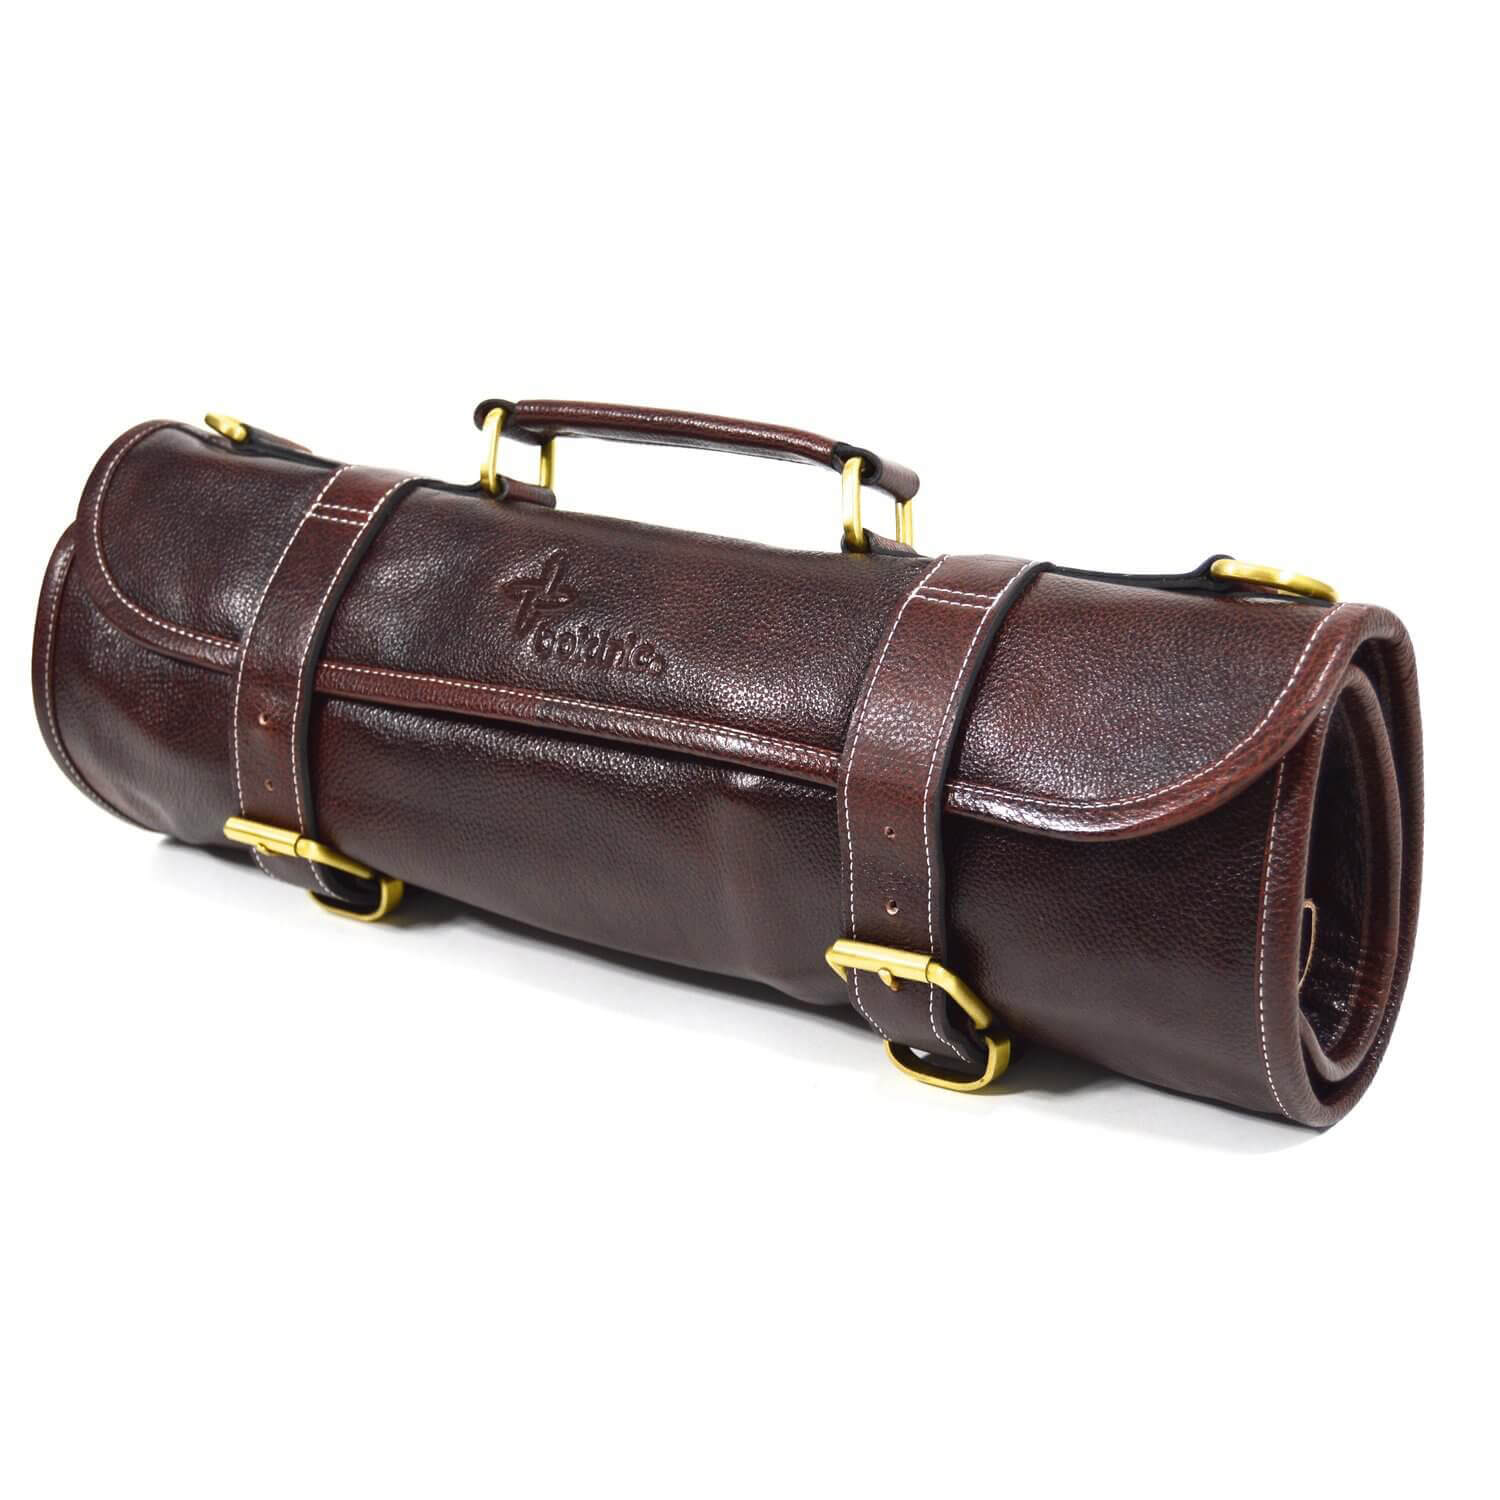 Boldric Leather Knoll Roll 9 mifuko Brown - House of Knives